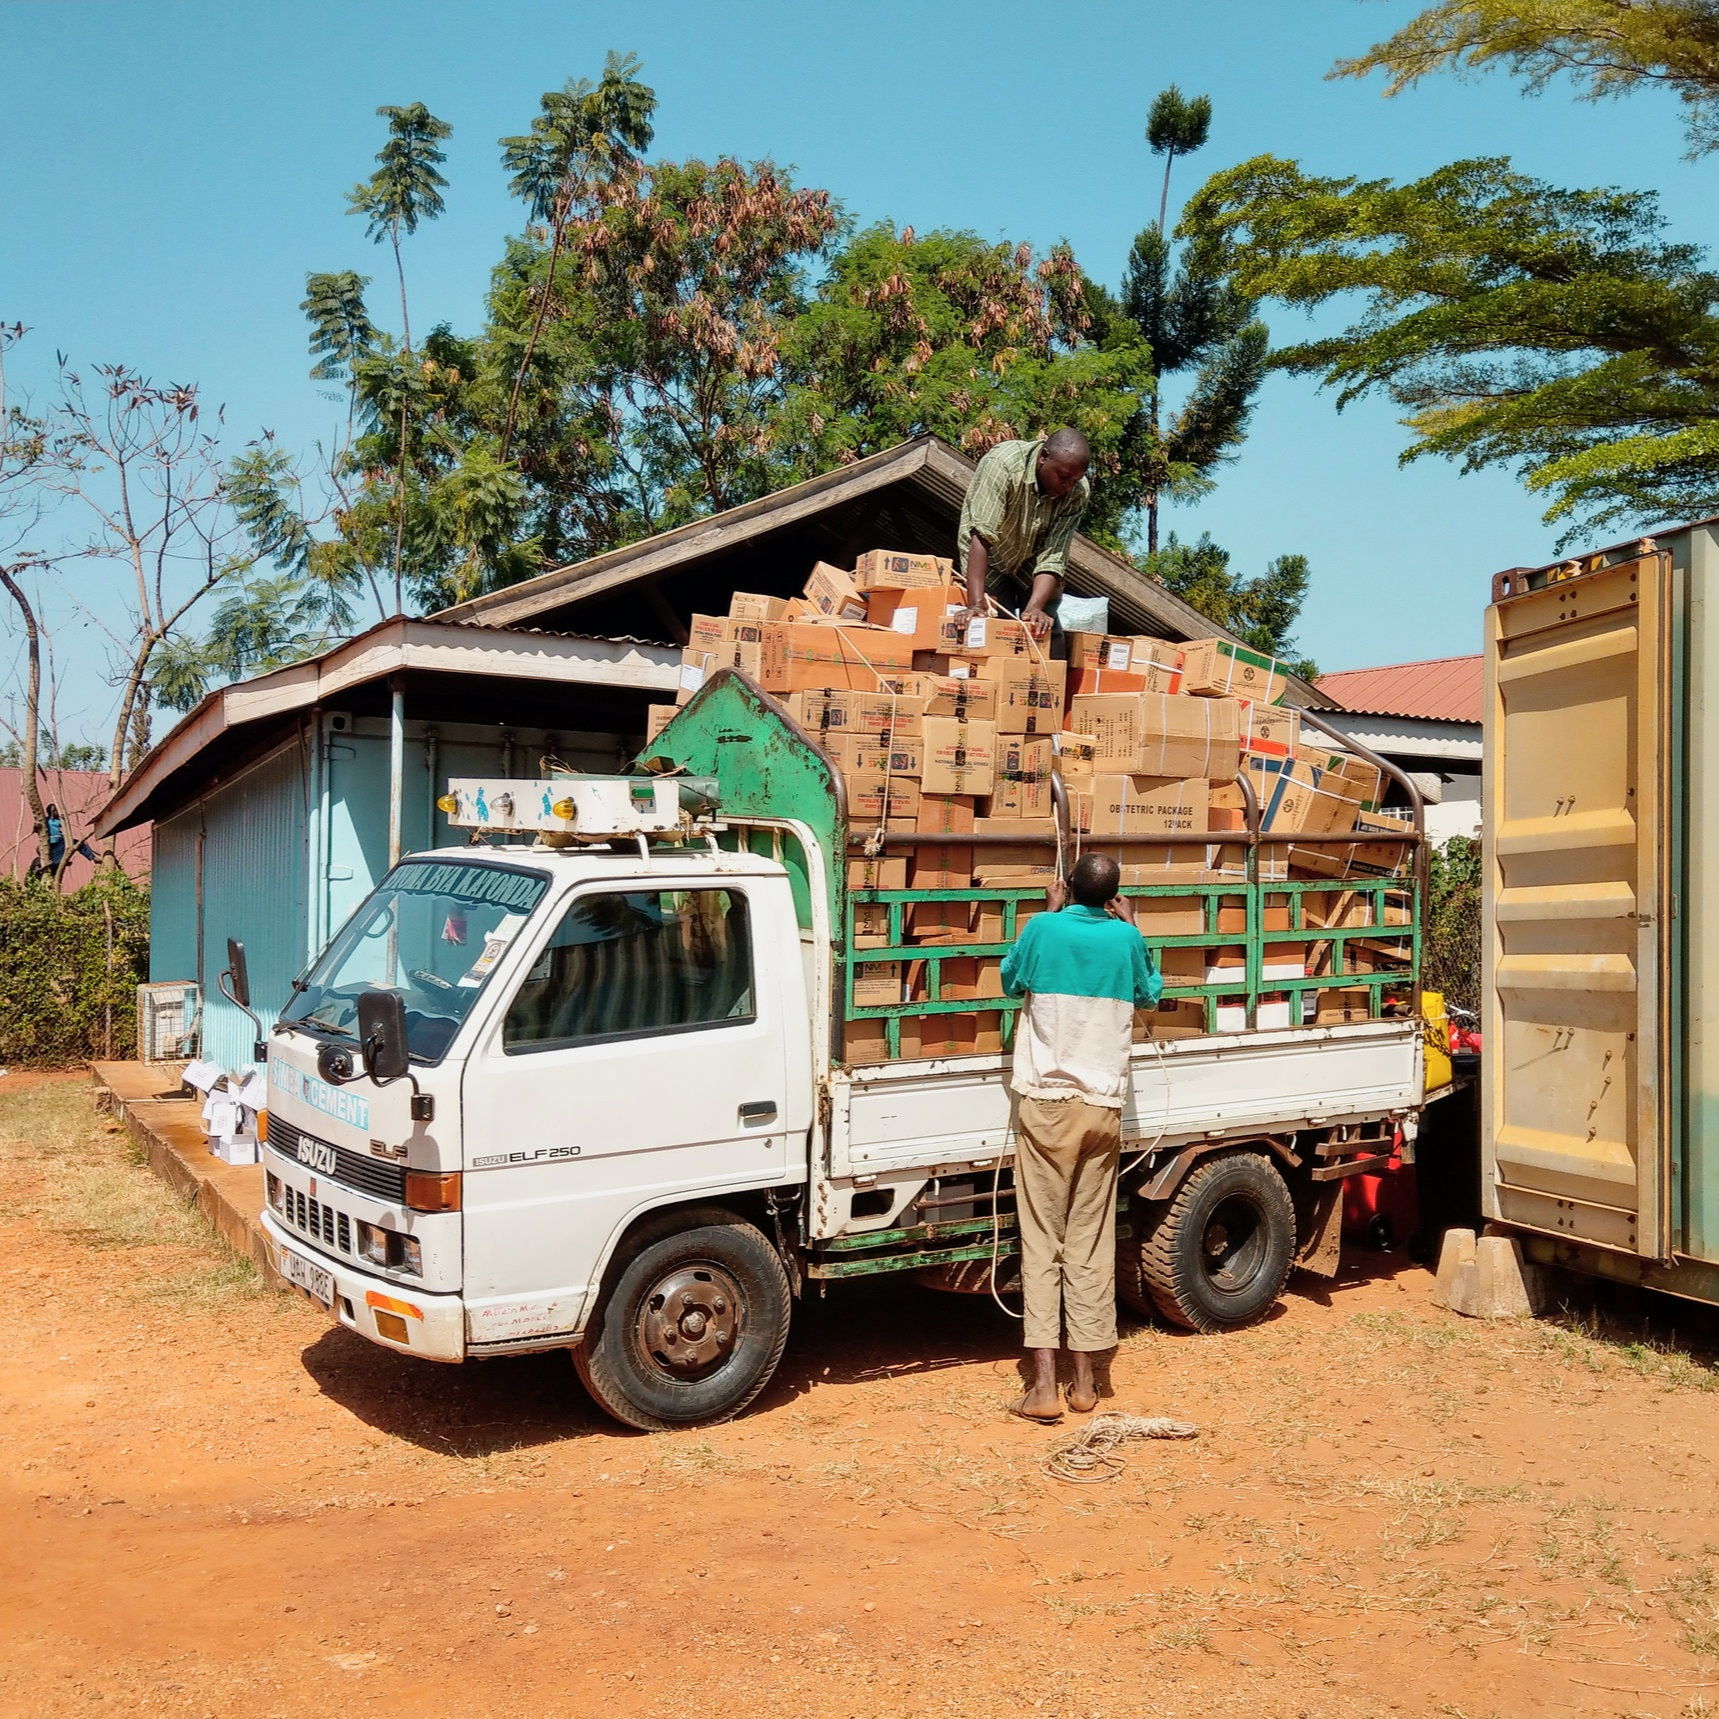 The truck is being loaded with medical supplies for delivery within the Mbale Health District.